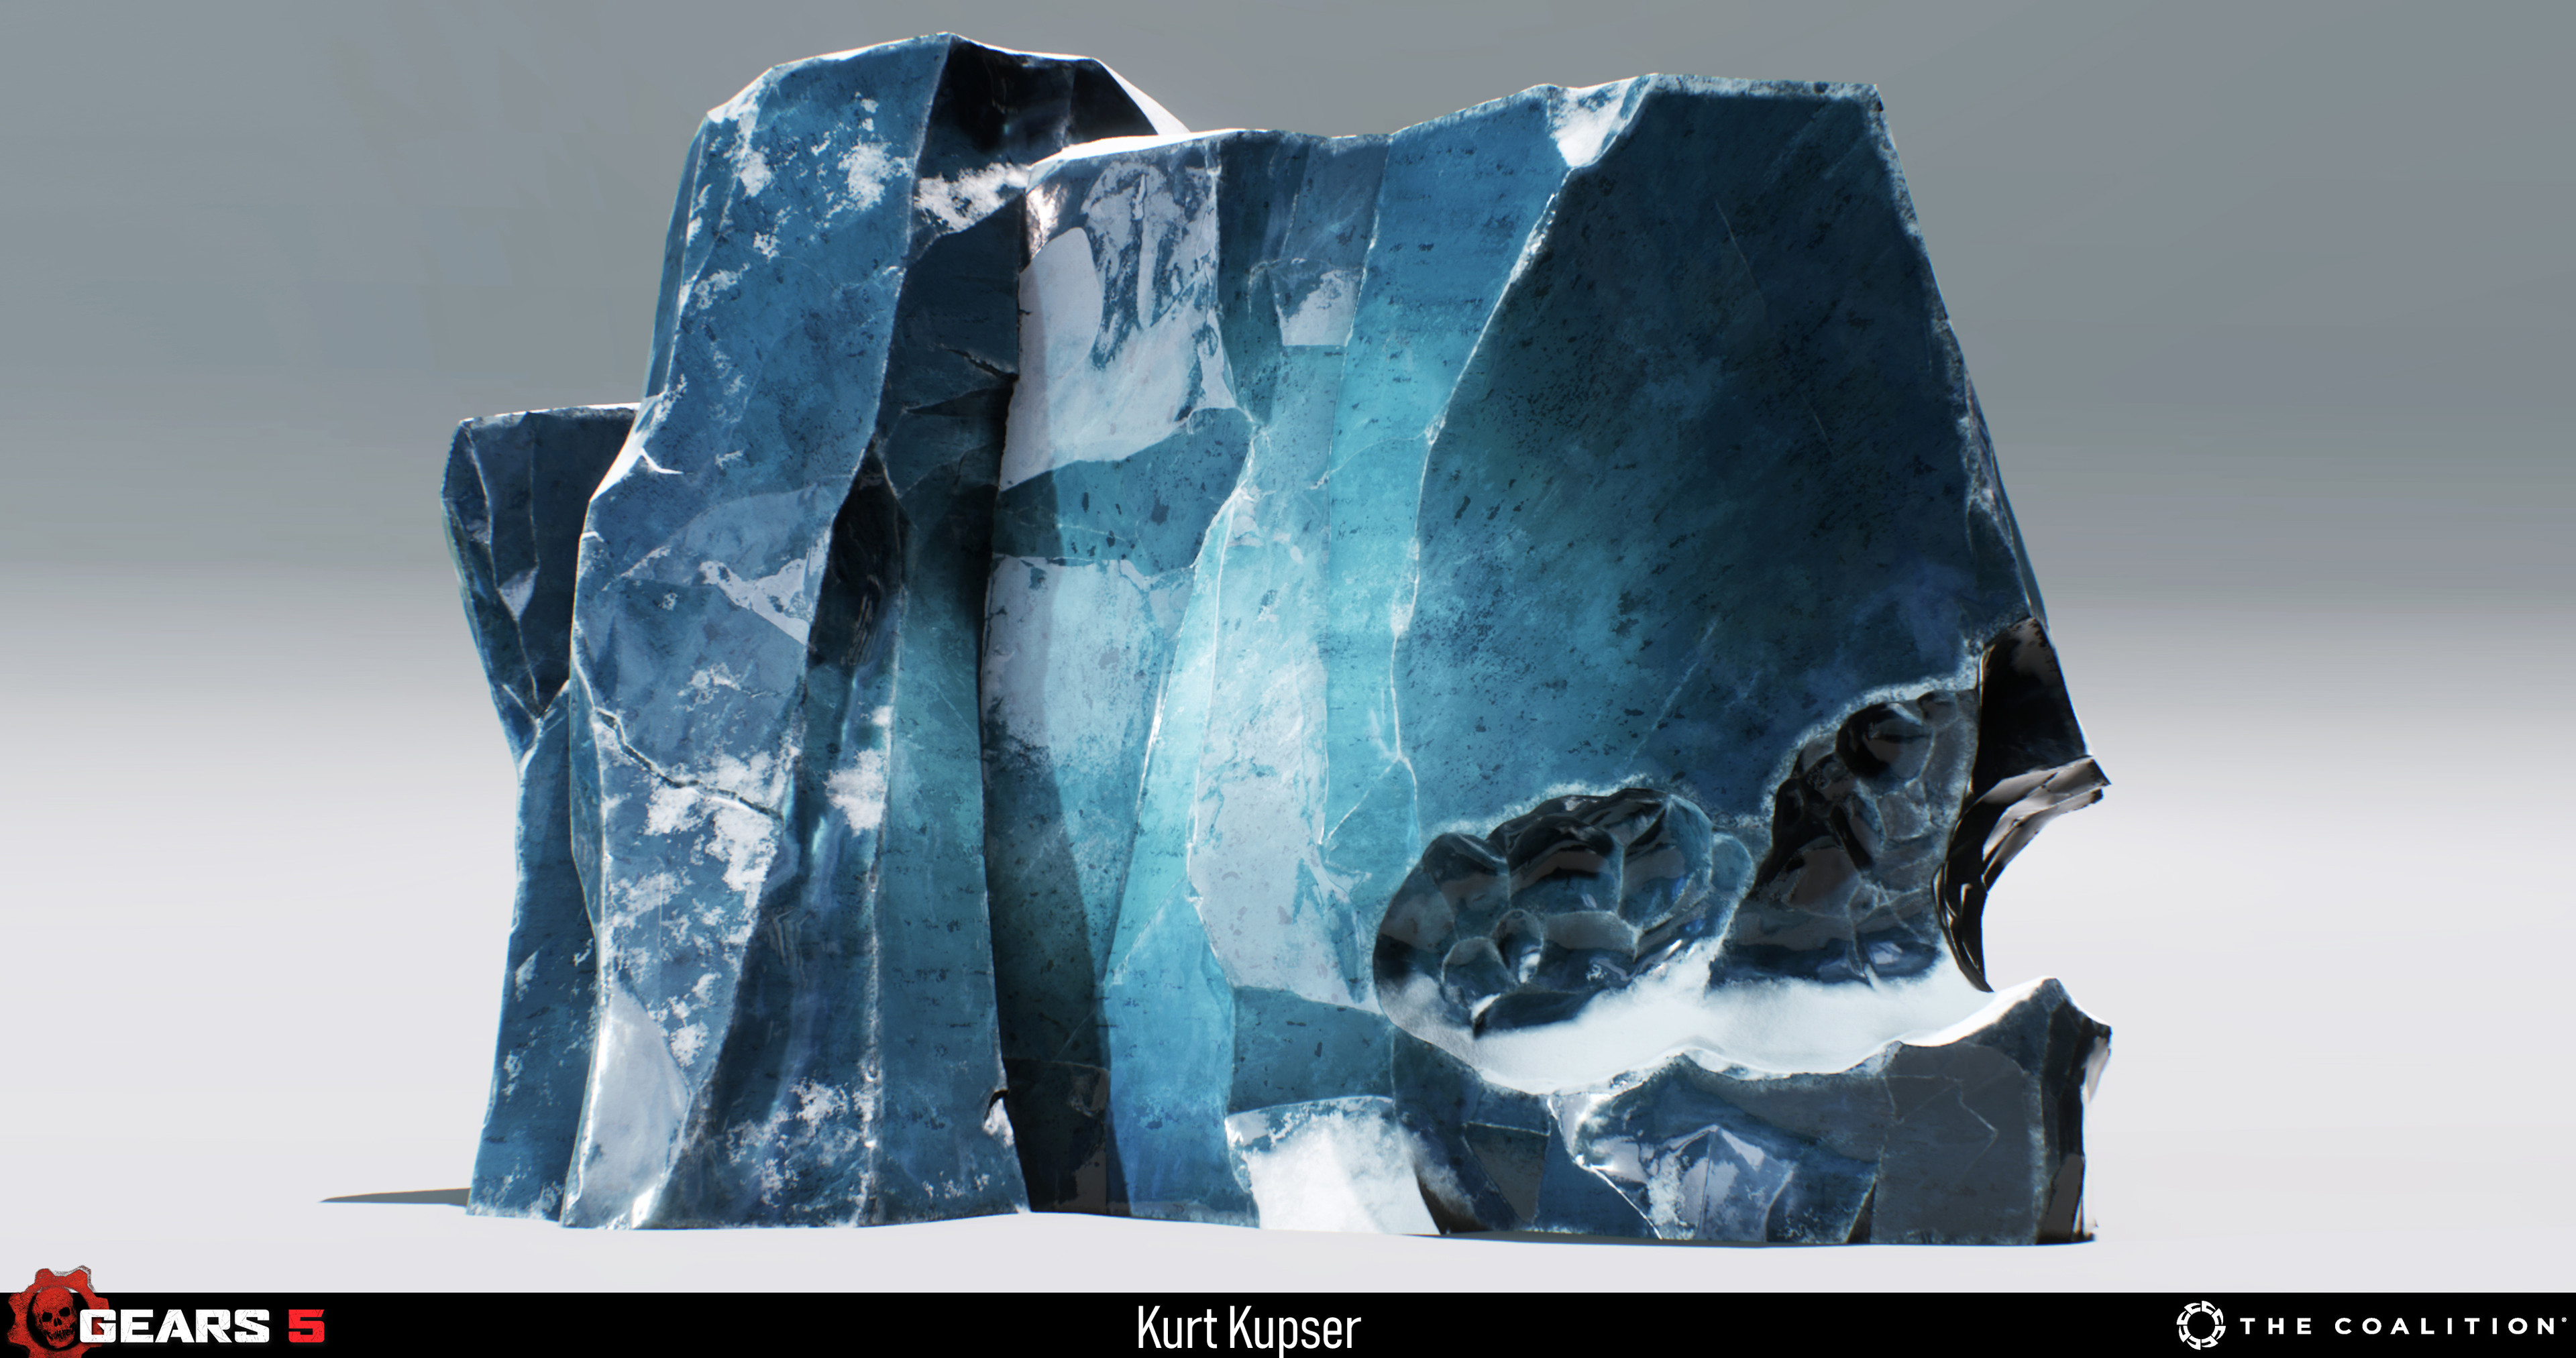 Ice Cliff asset made by myself